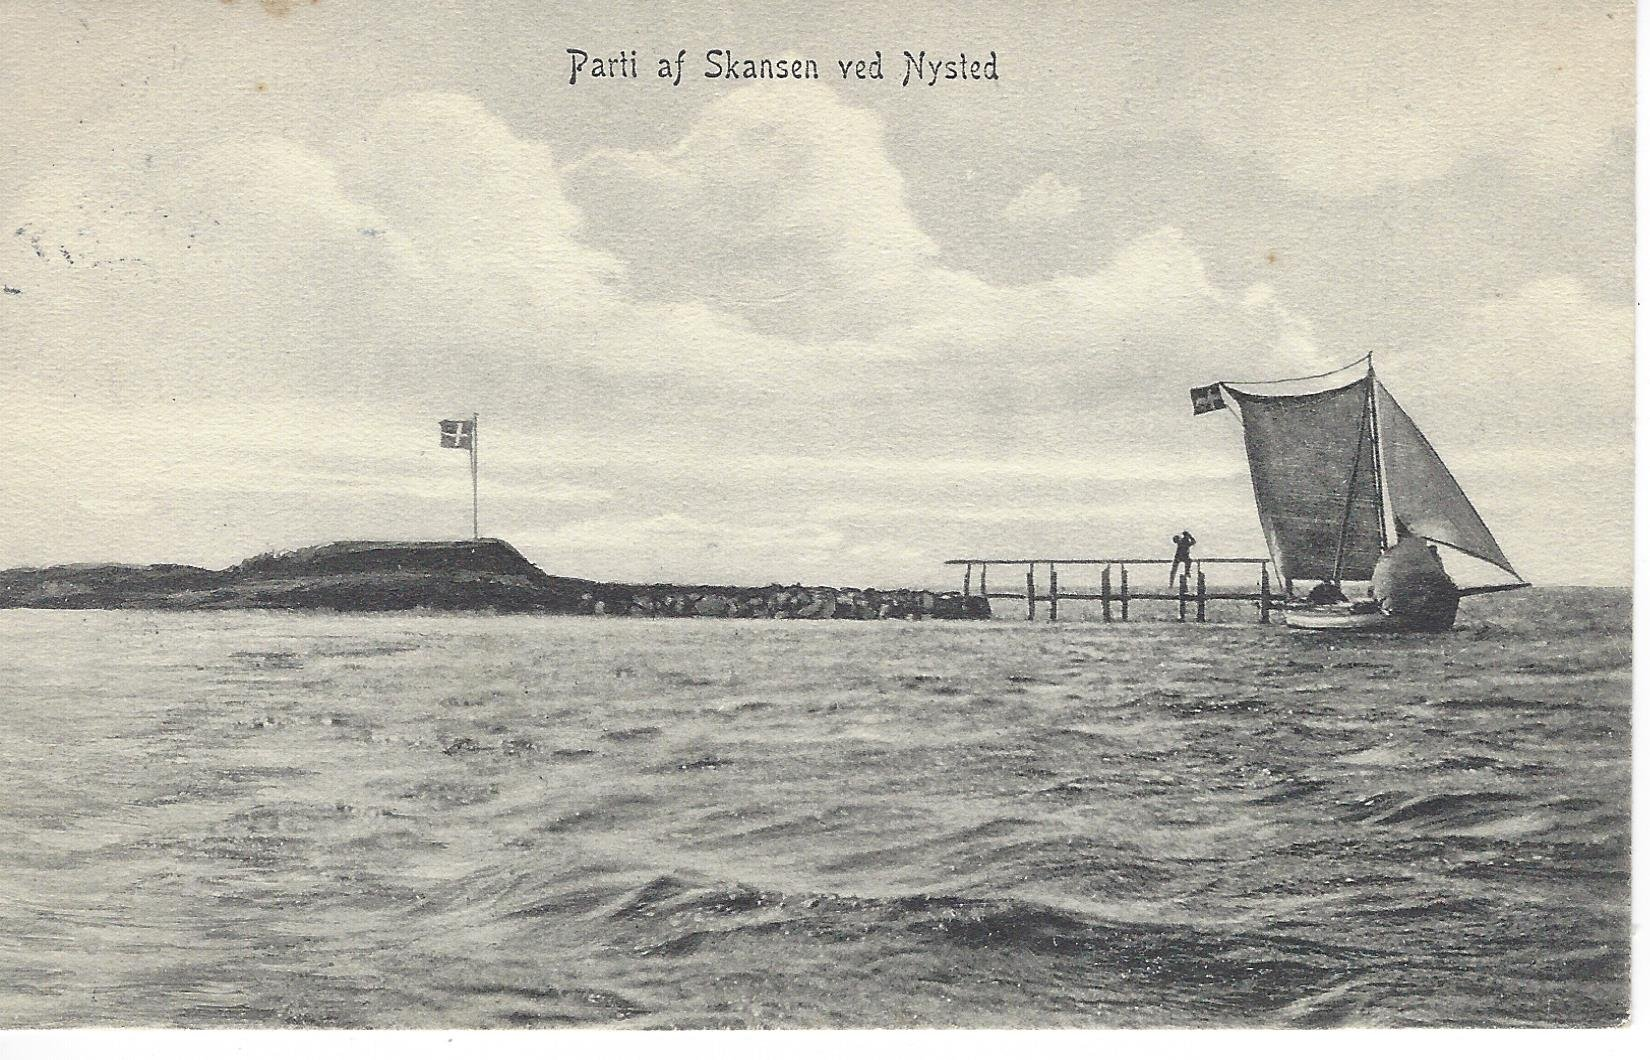 01-Skansen-ved-Nysted-1909